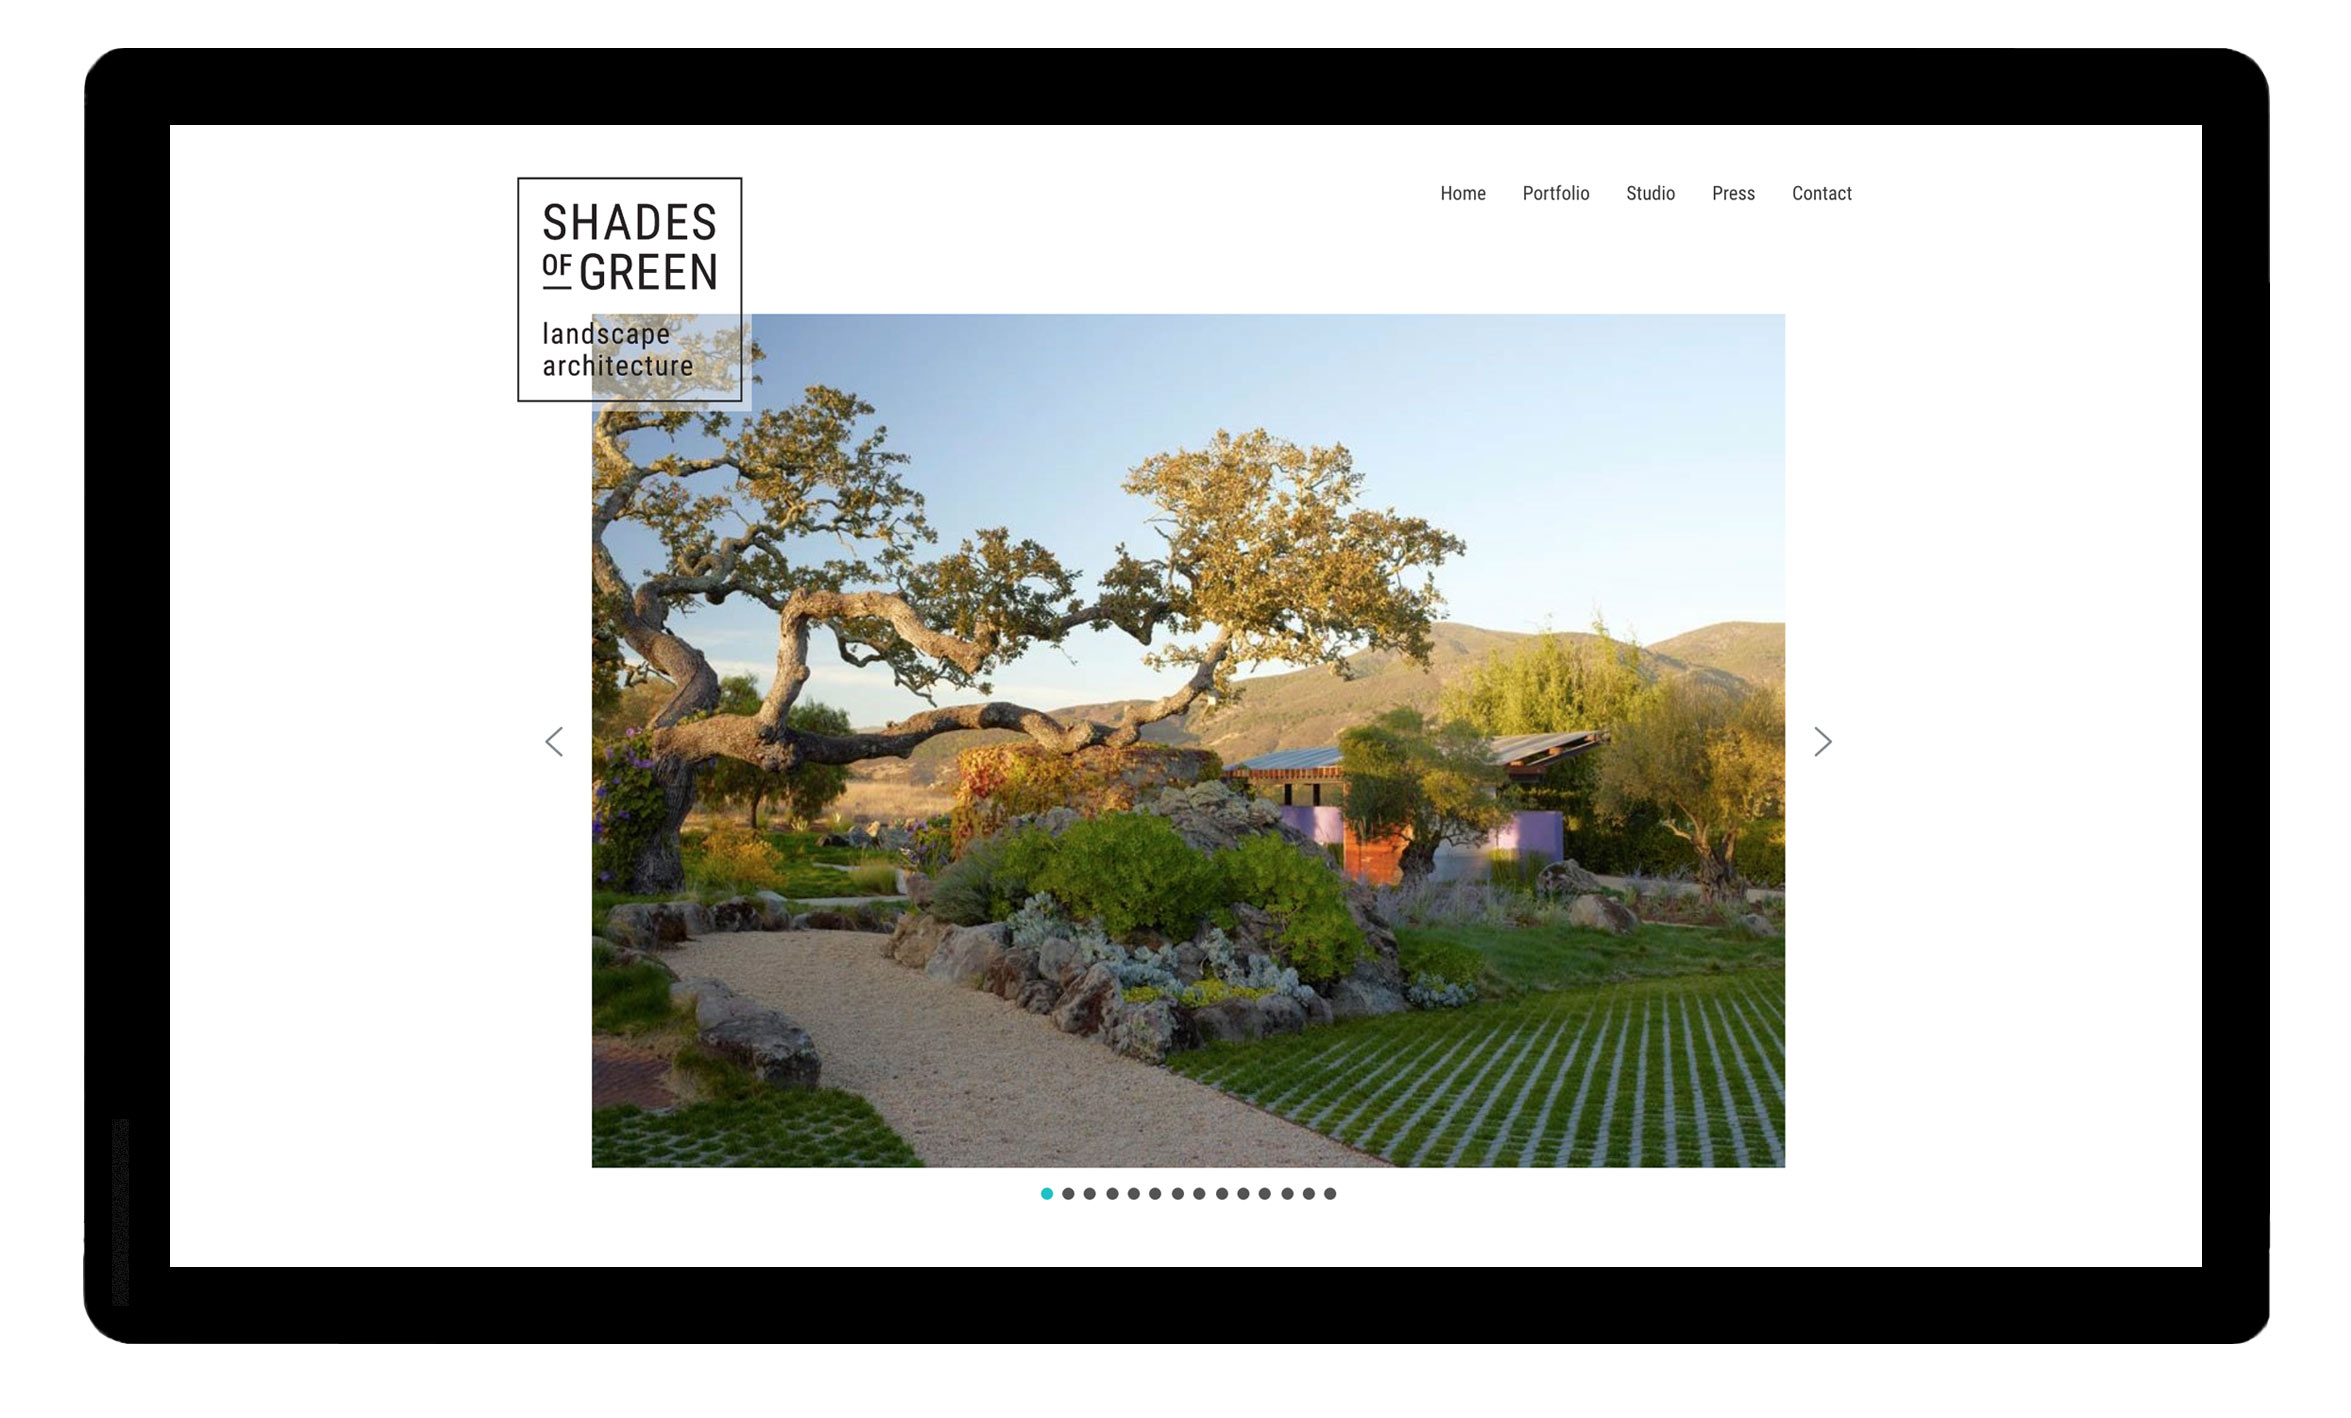 SOG-website-design-company-framed-web